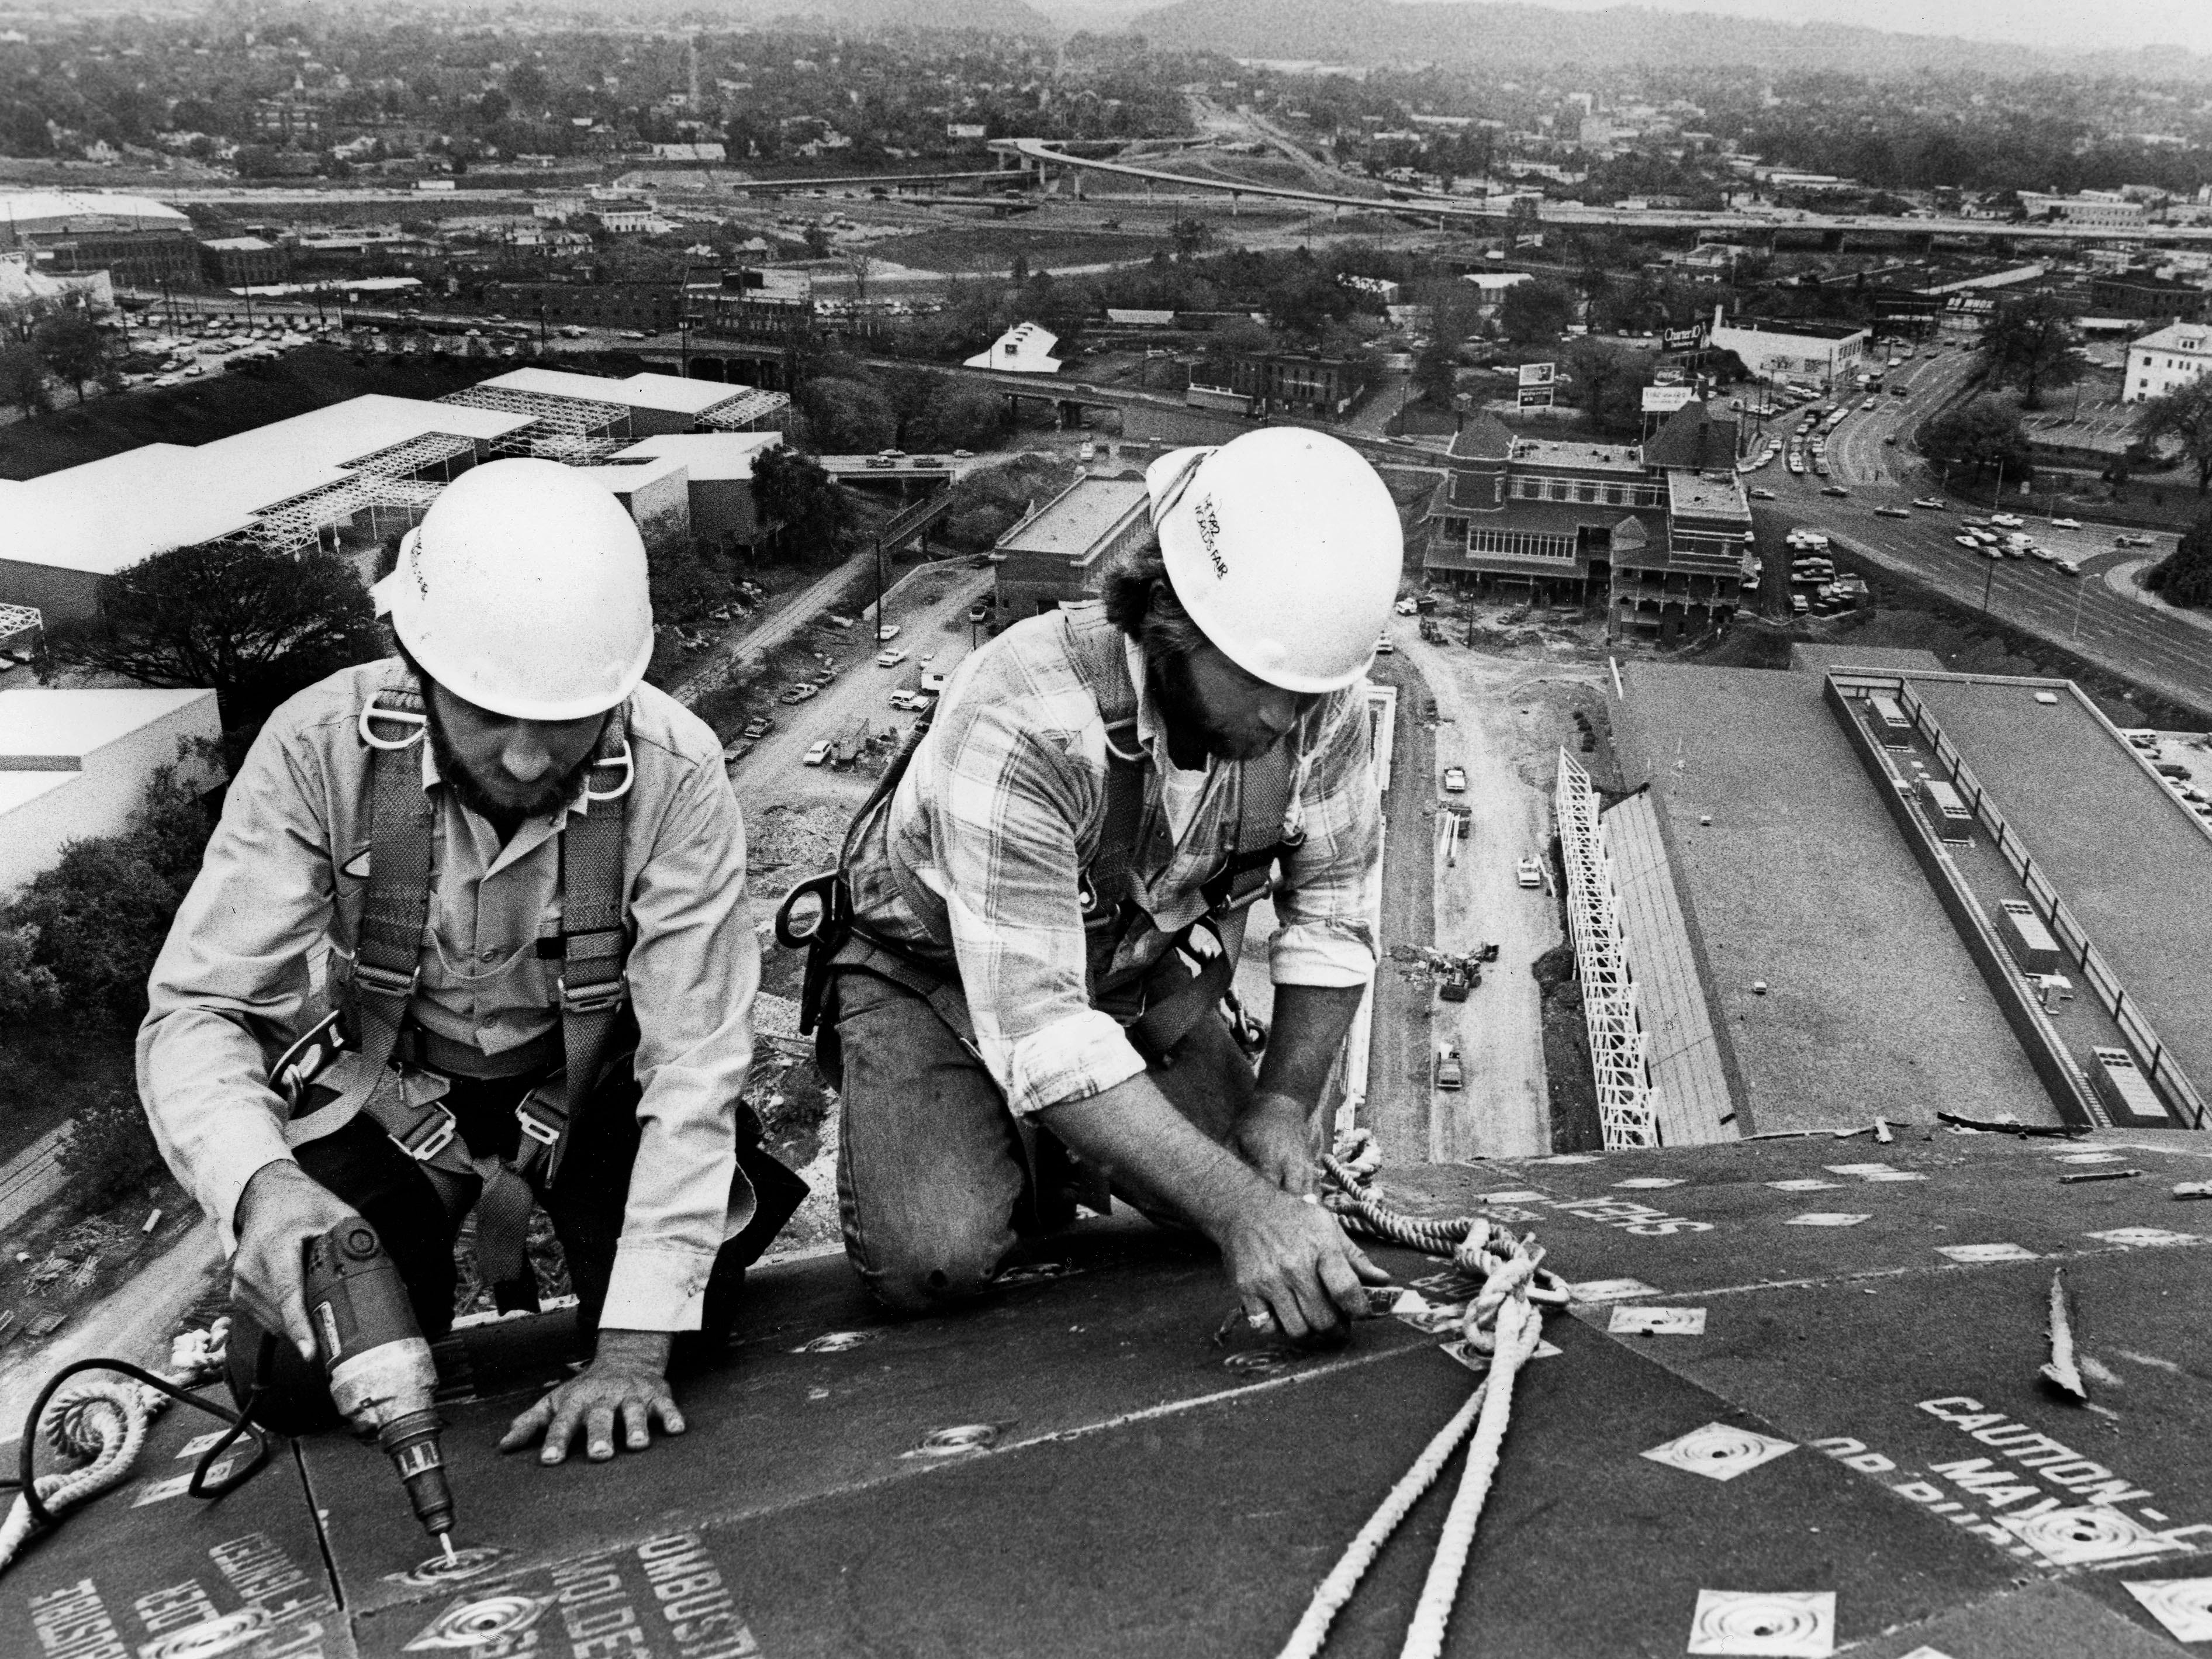 J.E. Gibson, left, and Donnie Cusick, right, both from Seymour, work on installing sheet metal far above ground on the top of the Sunsphere on October 23, 1981.